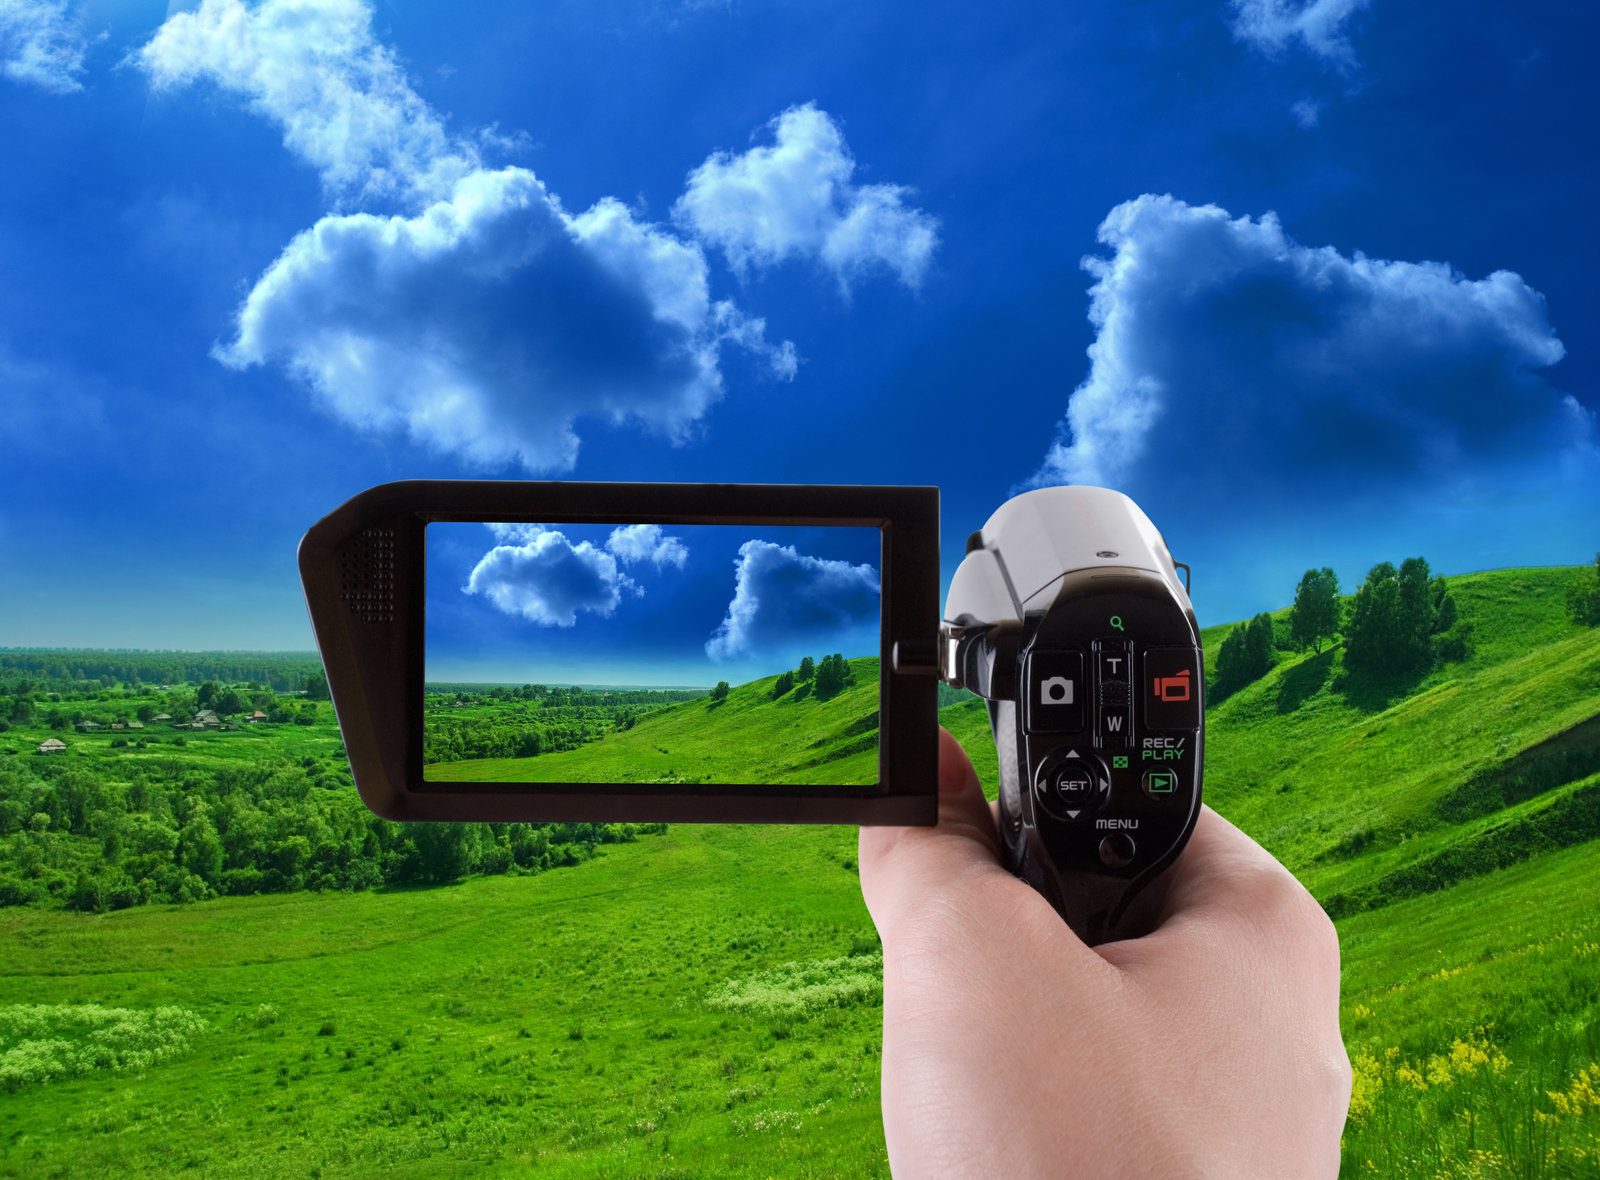 Top 7 Benefits of Cloud Video Surveillance Systems